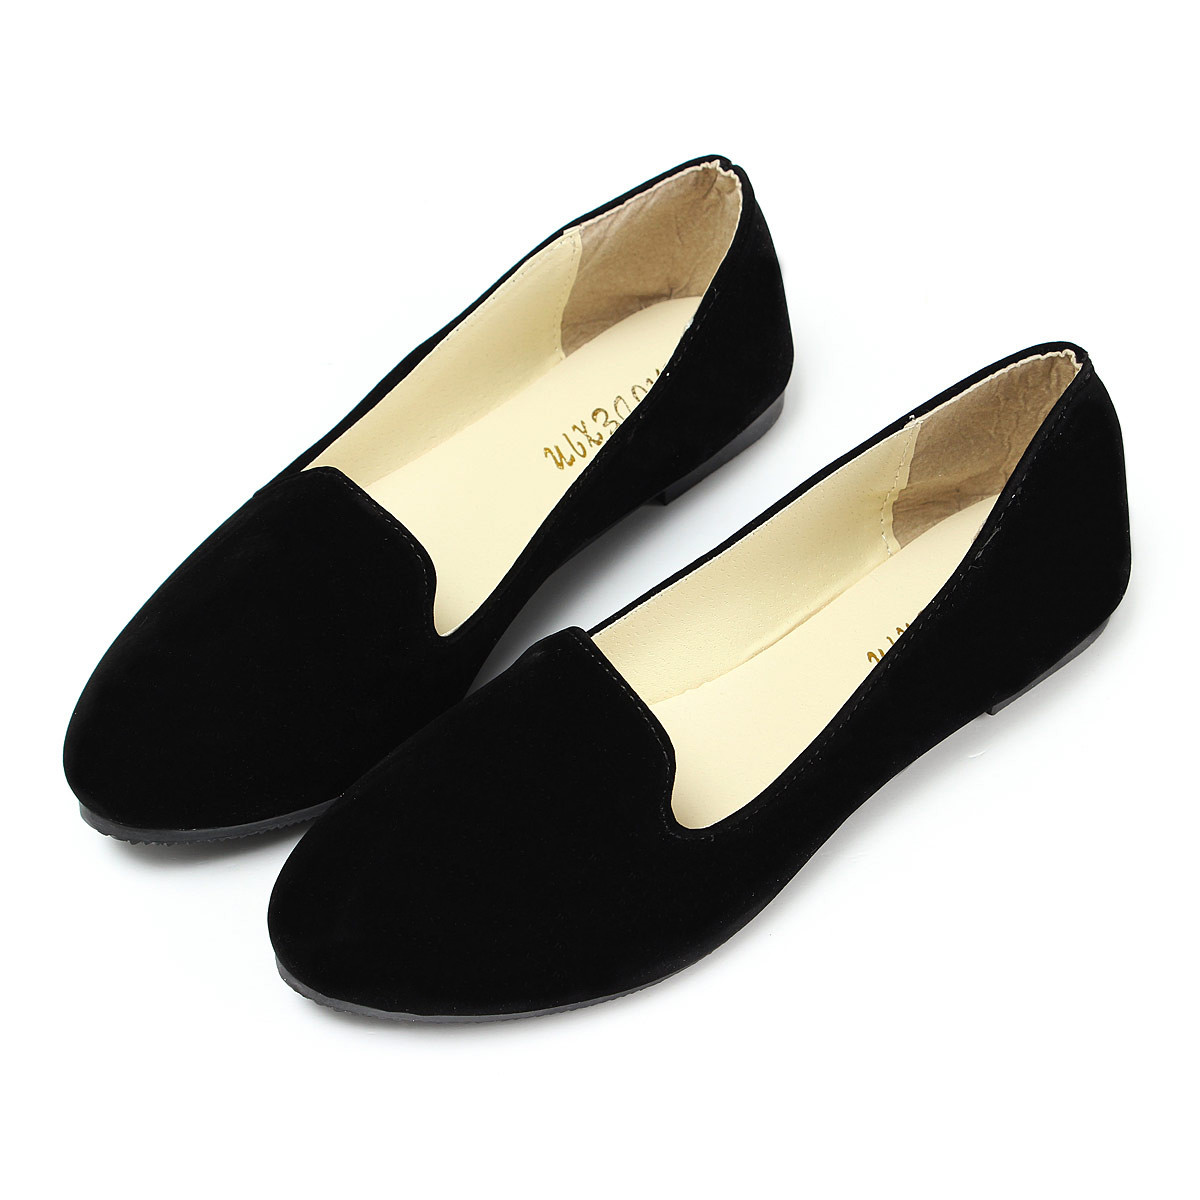 New Women Casual Boat Shoes Lady Flat Ballet Slip On Flats ...